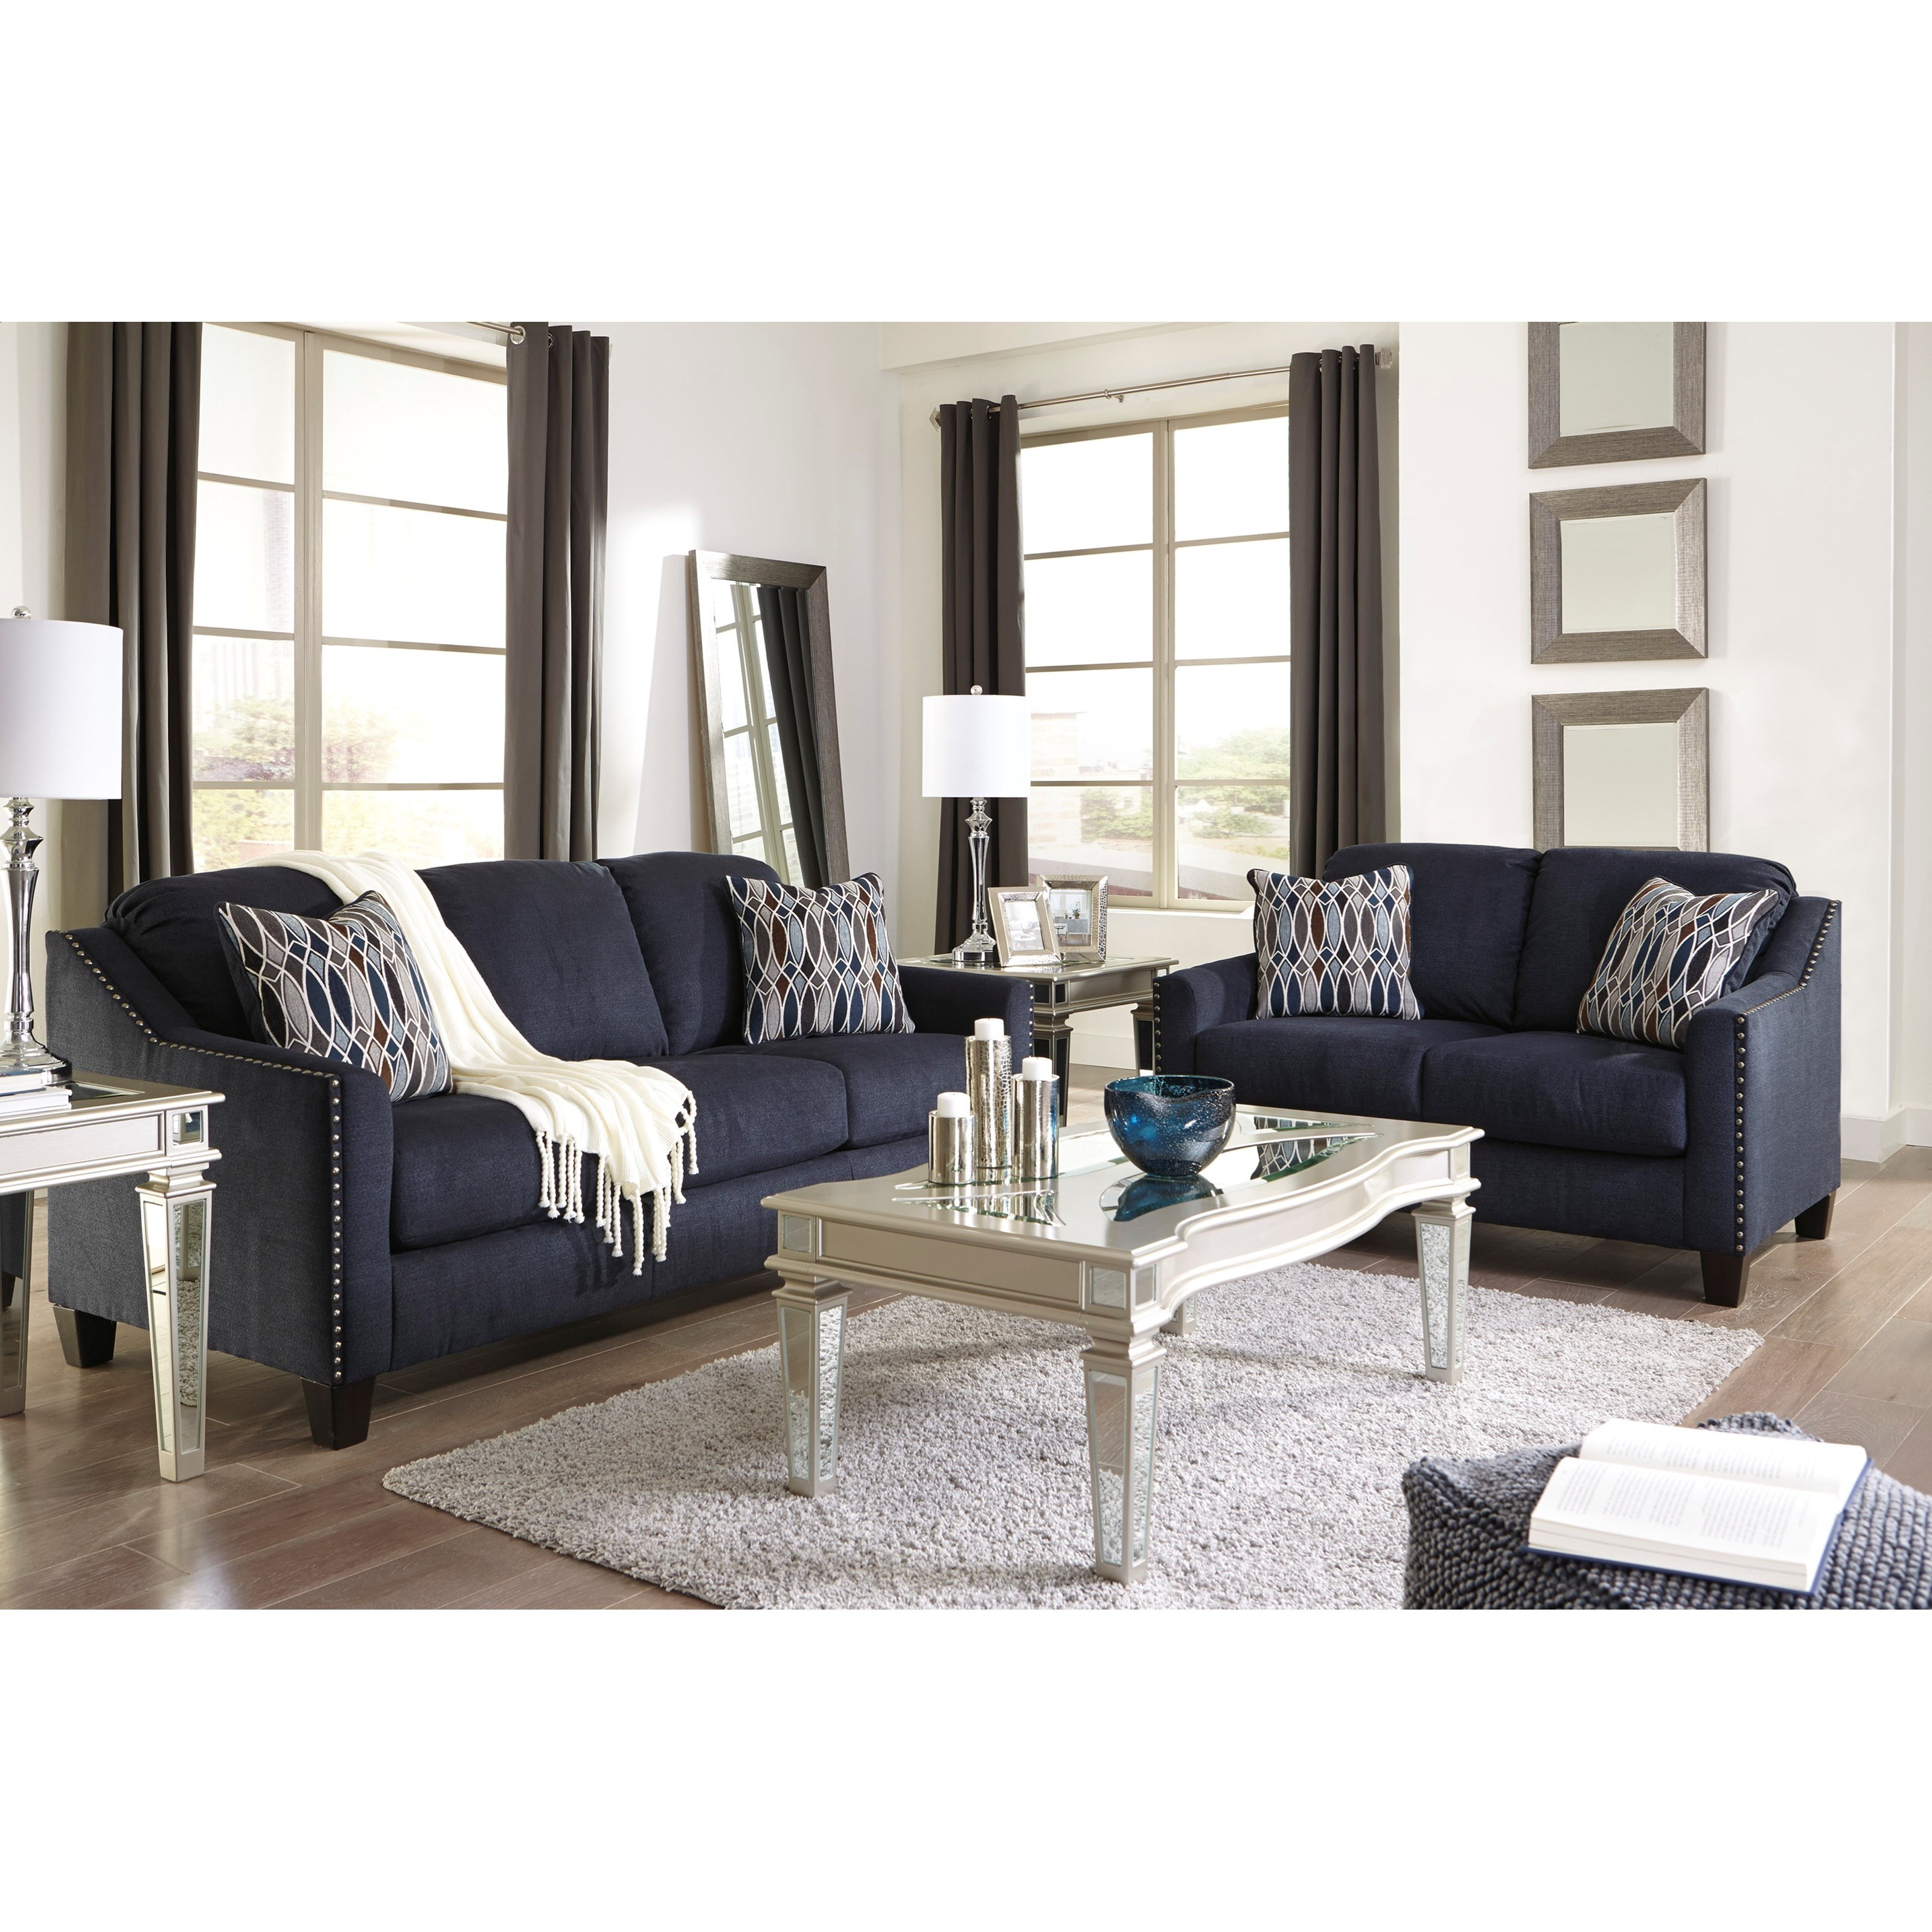 Ashley City Furniture: Benchcraft By Ashley Creeal Heights Sofa With Nailhead